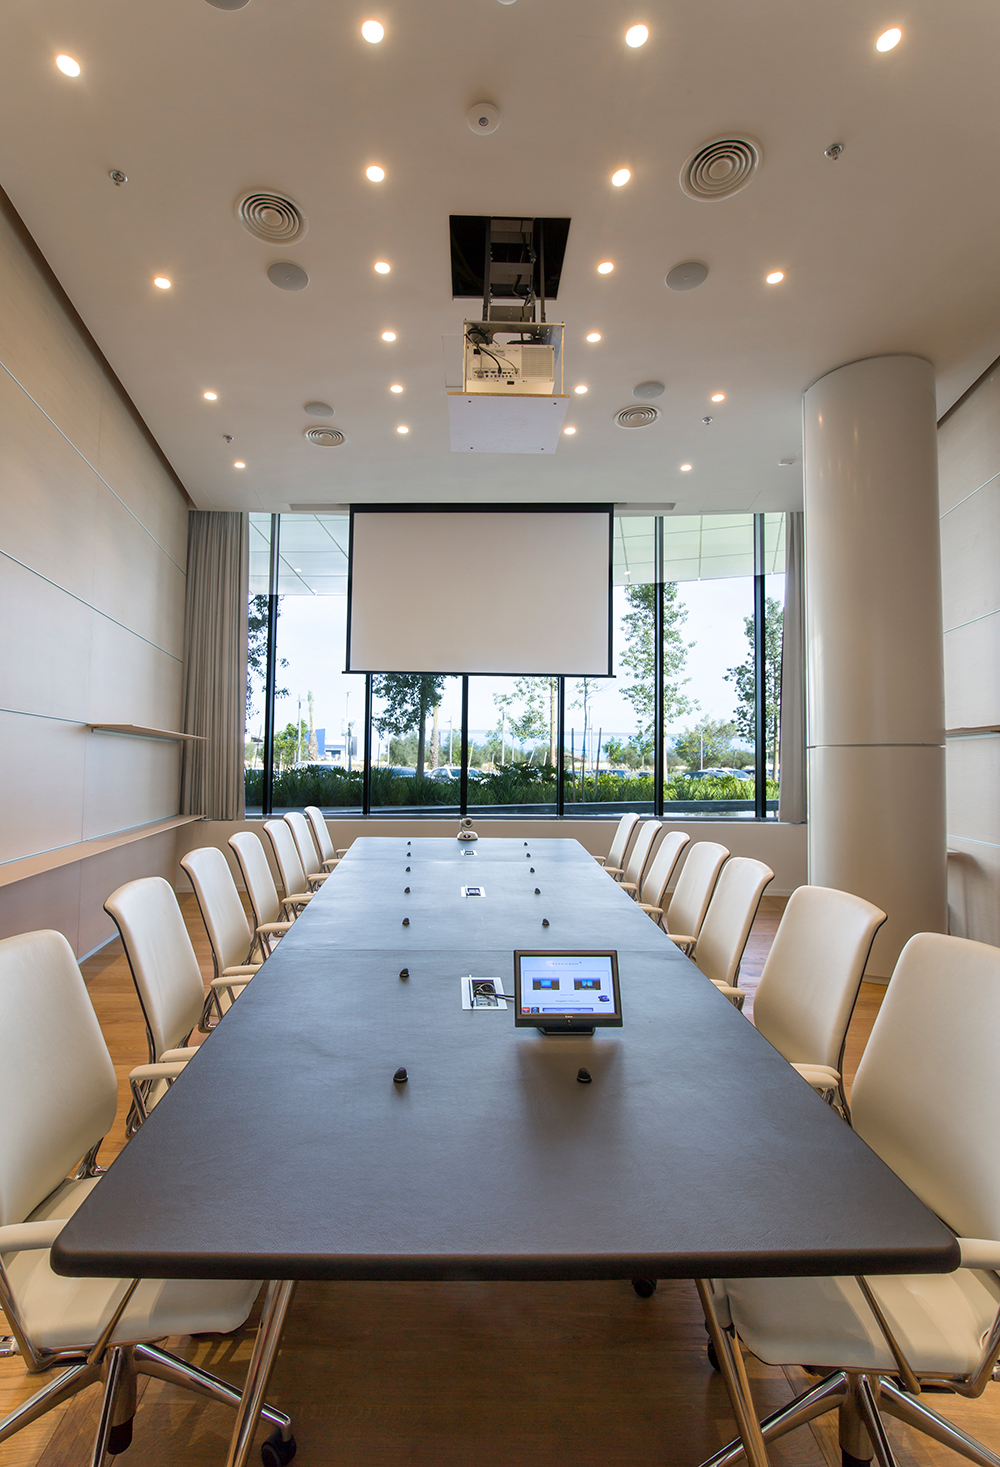 In the boardroom, Extron DTP T USW 233 switchers mounted beneath the table send signals to the matrix switcher.